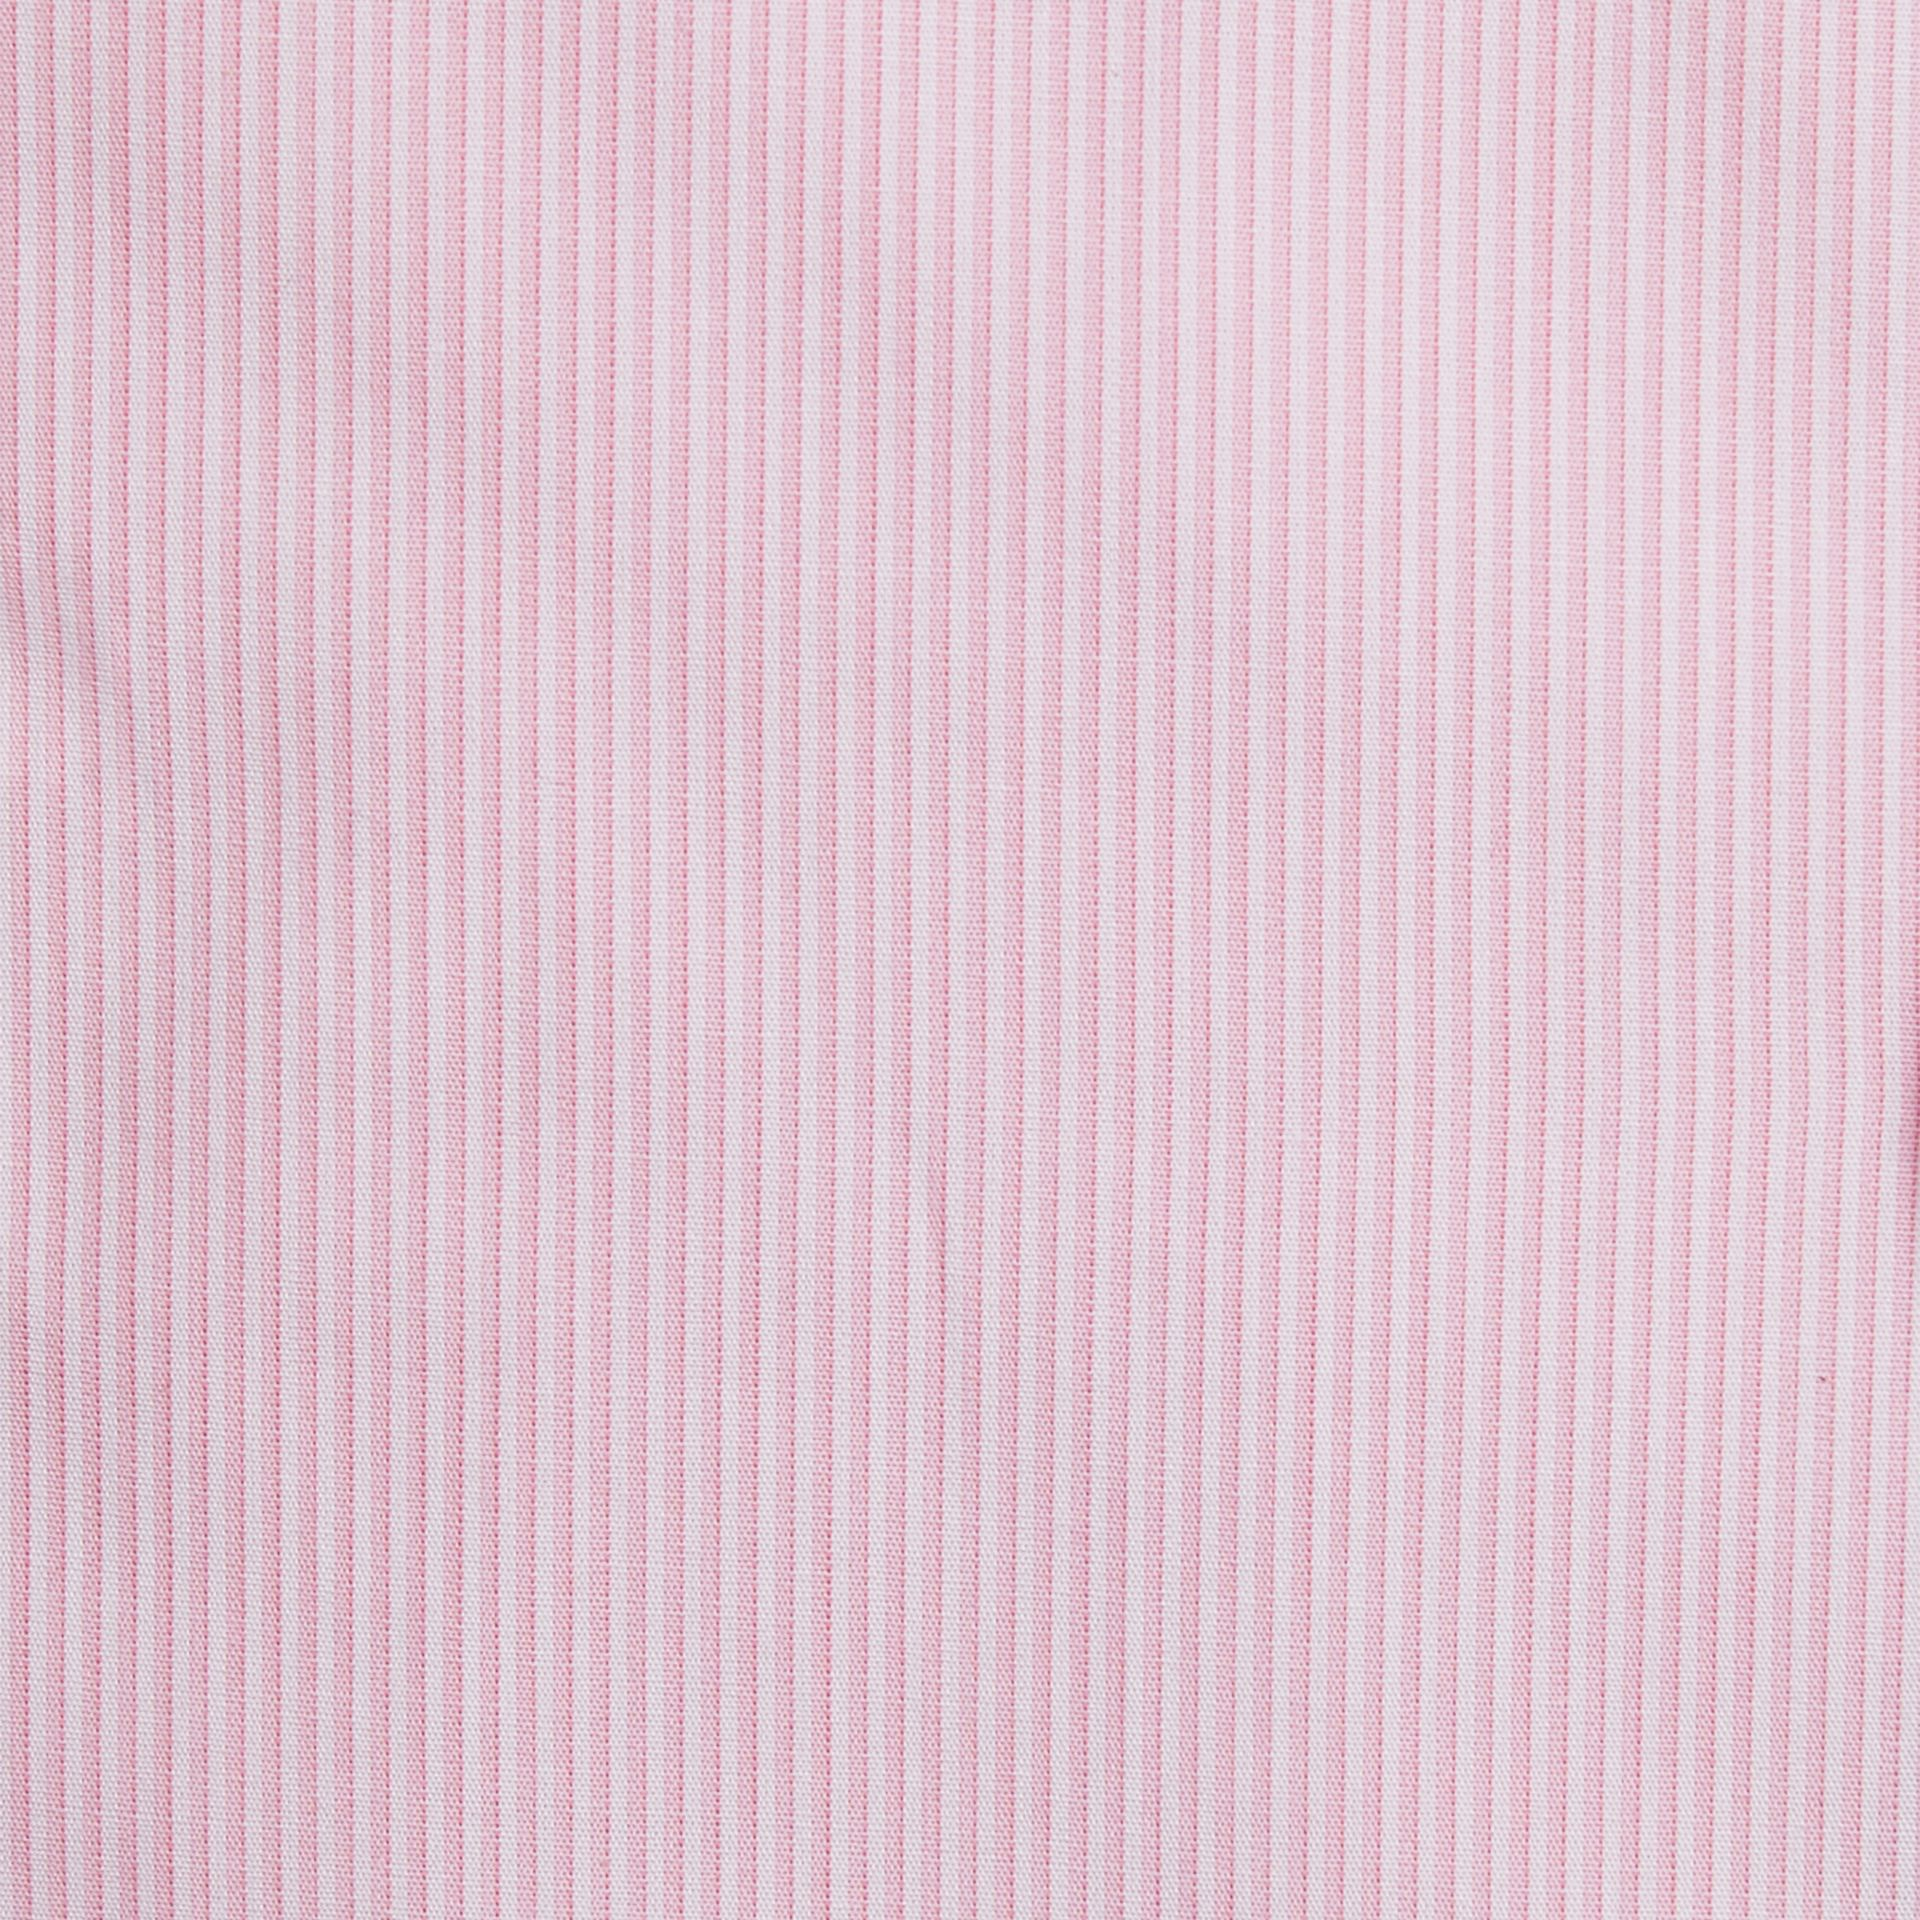 Slim Fit Striped Cotton Poplin Shirt City Pink - gallery image 2